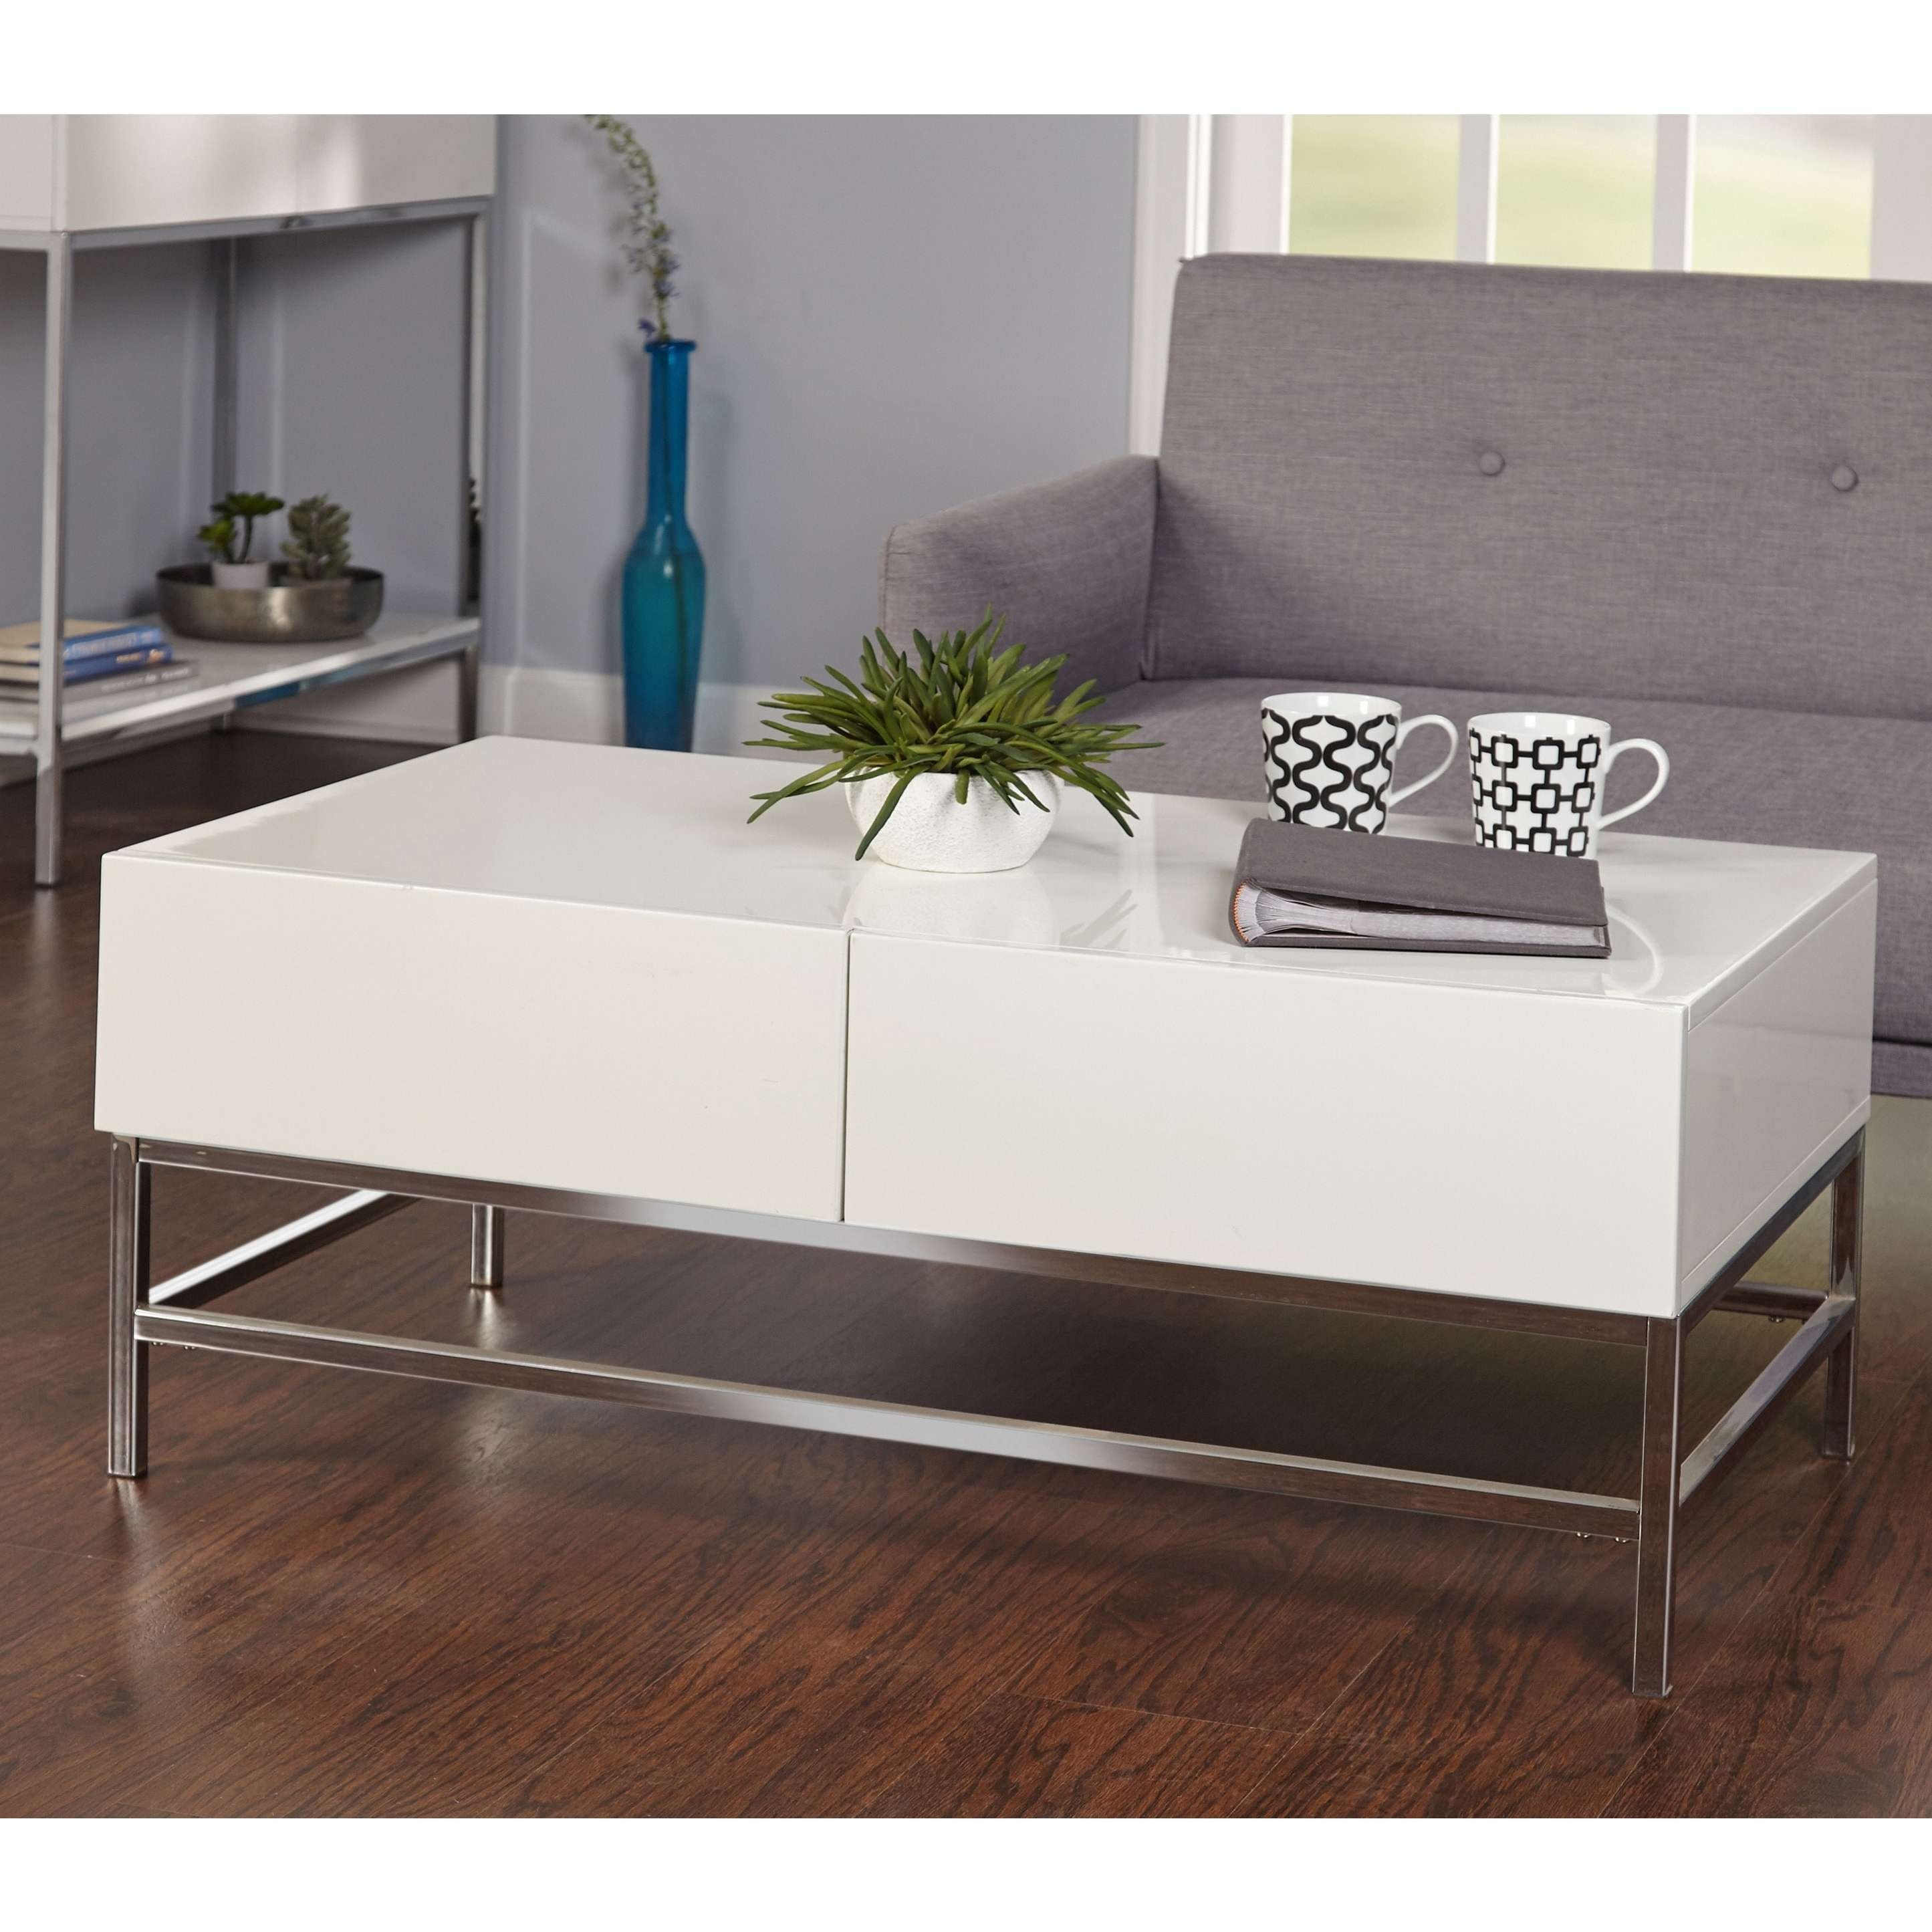 2017 Gloss Coffee Tables Pertaining To Simple Living White Metal High Gloss Coffee Table – Free Shipping (View 1 of 20)